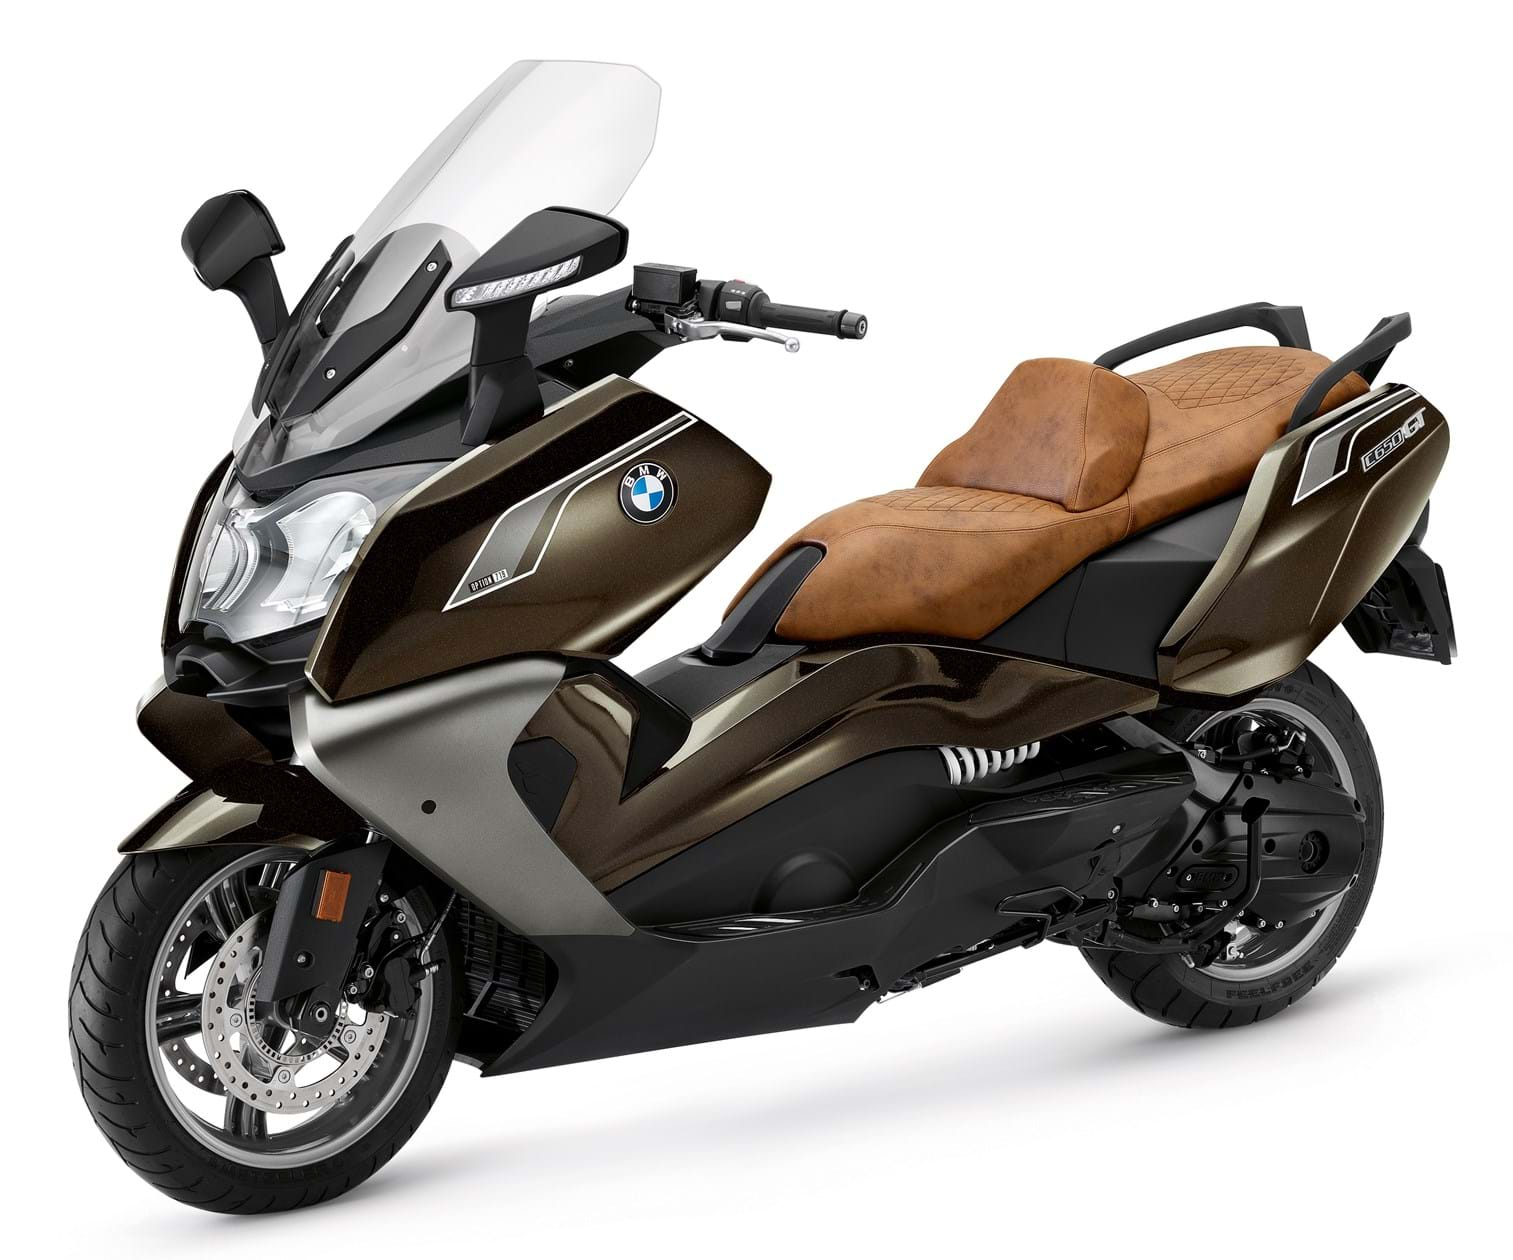 for sale: bmw c650 gt • the bike market